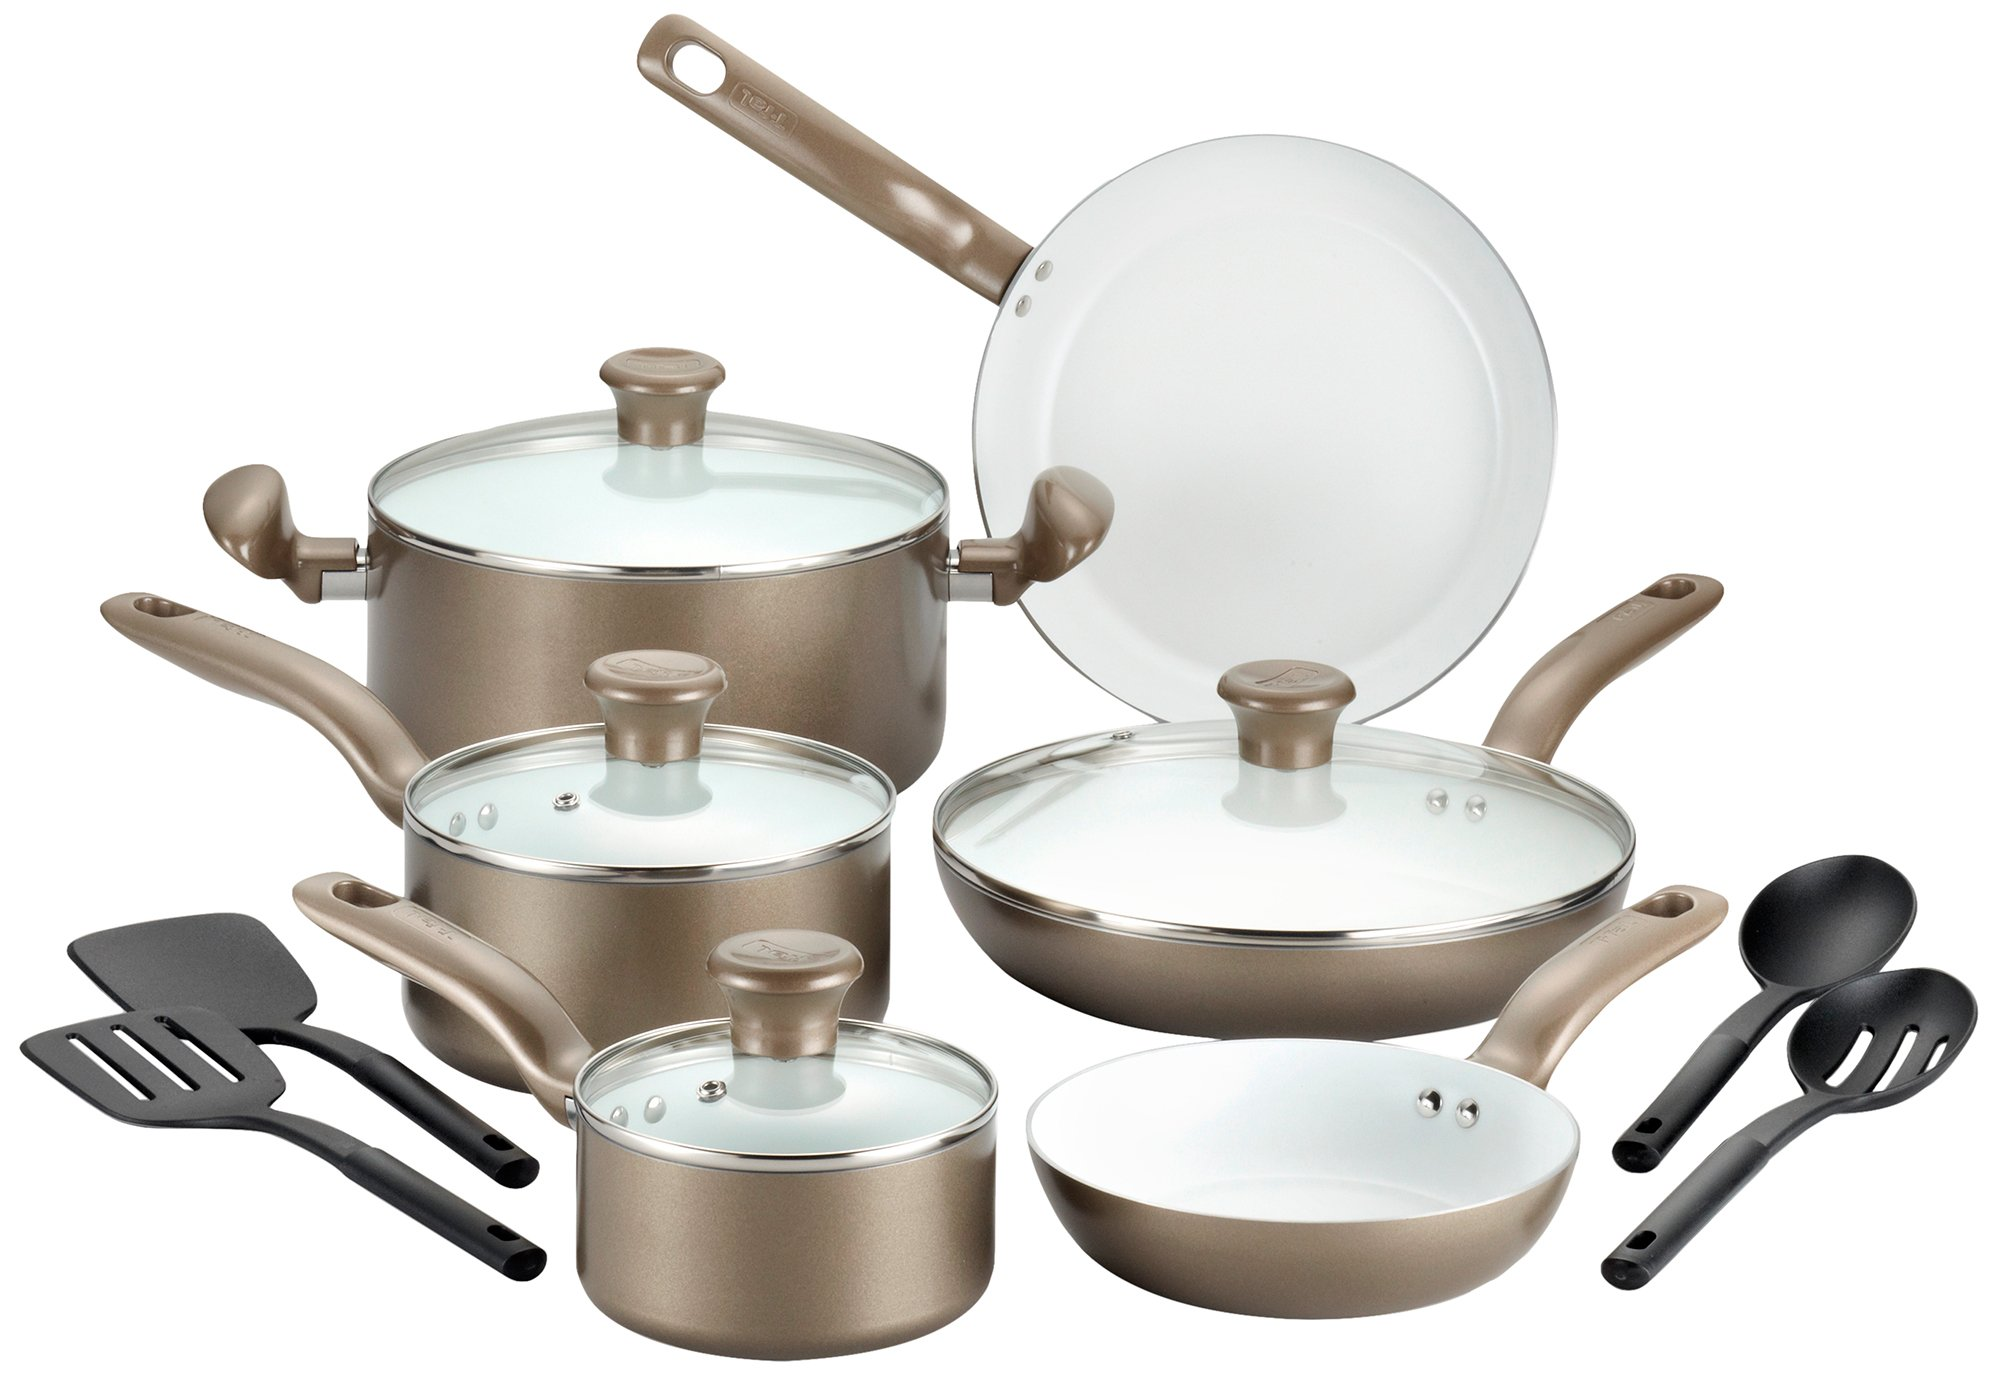 T-fal Ceramic Cookware Set, Nonstick Cookware Set, 14 Piece, Gold